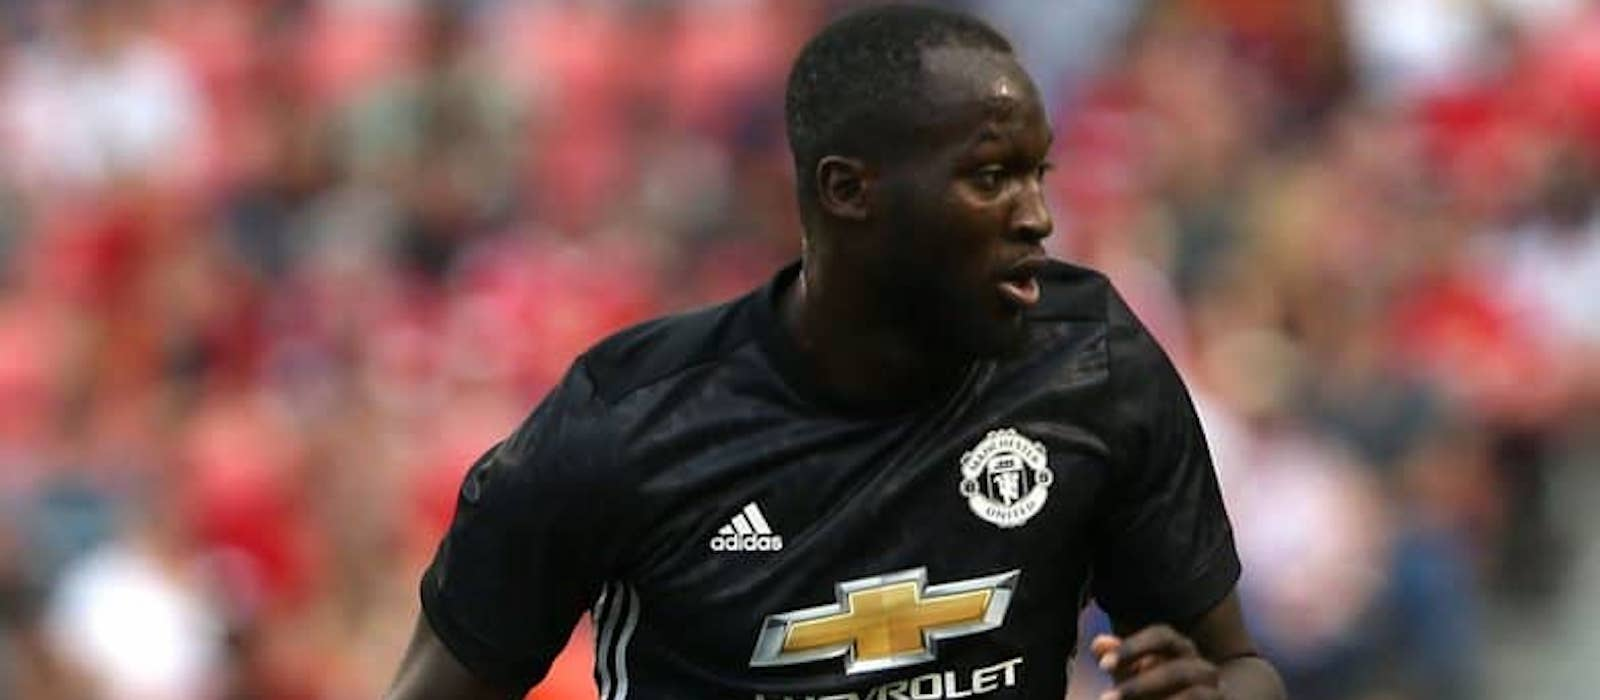 Jose Mourinho explains what he told Romelu Lukaku before his goal